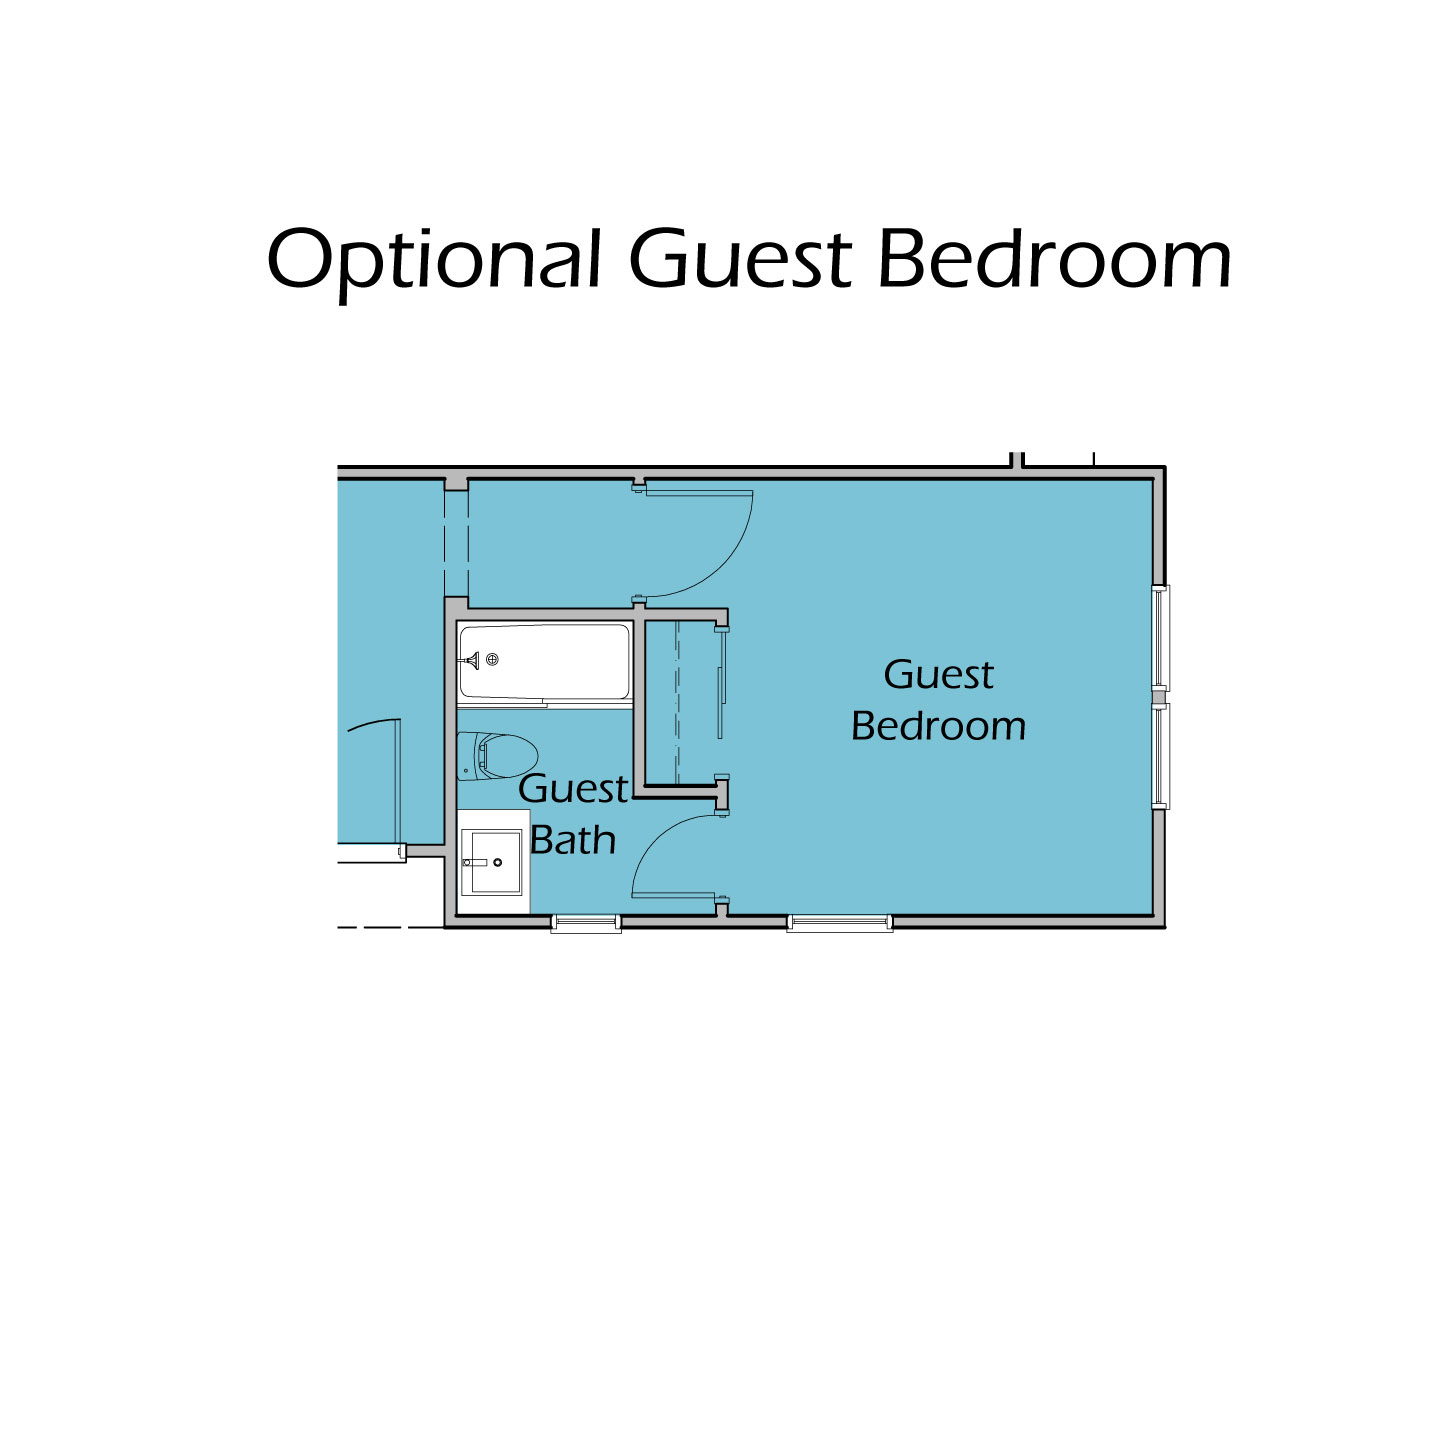 Heartland Plan TC2 Guest Bedroom Option